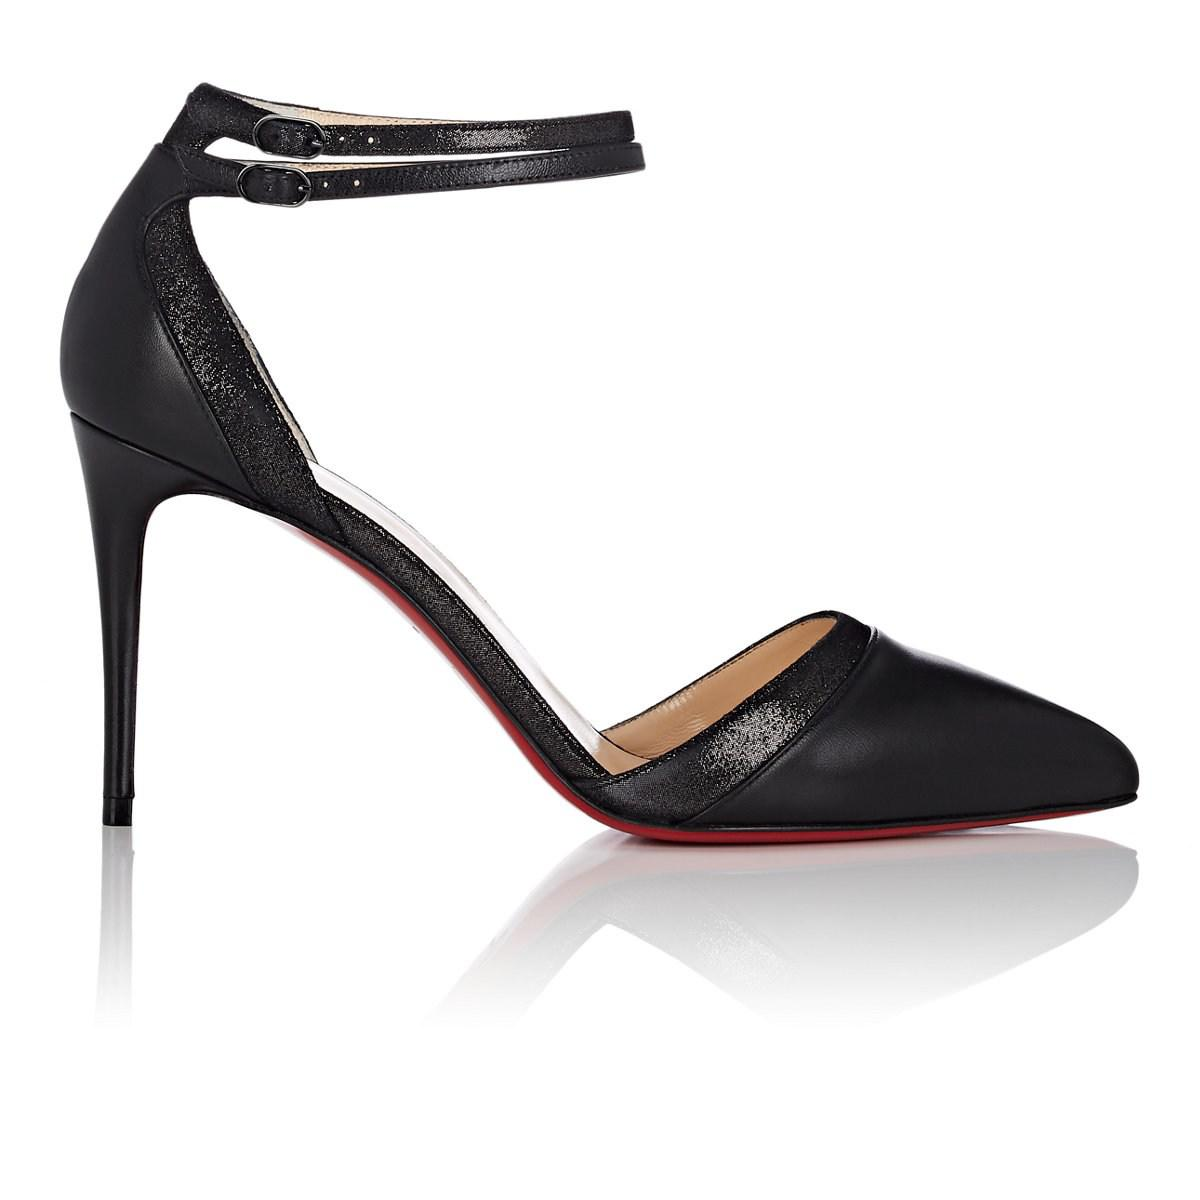 new styles 7603b 466b5 Christian Louboutin Black Uptown-double Leather Pumps